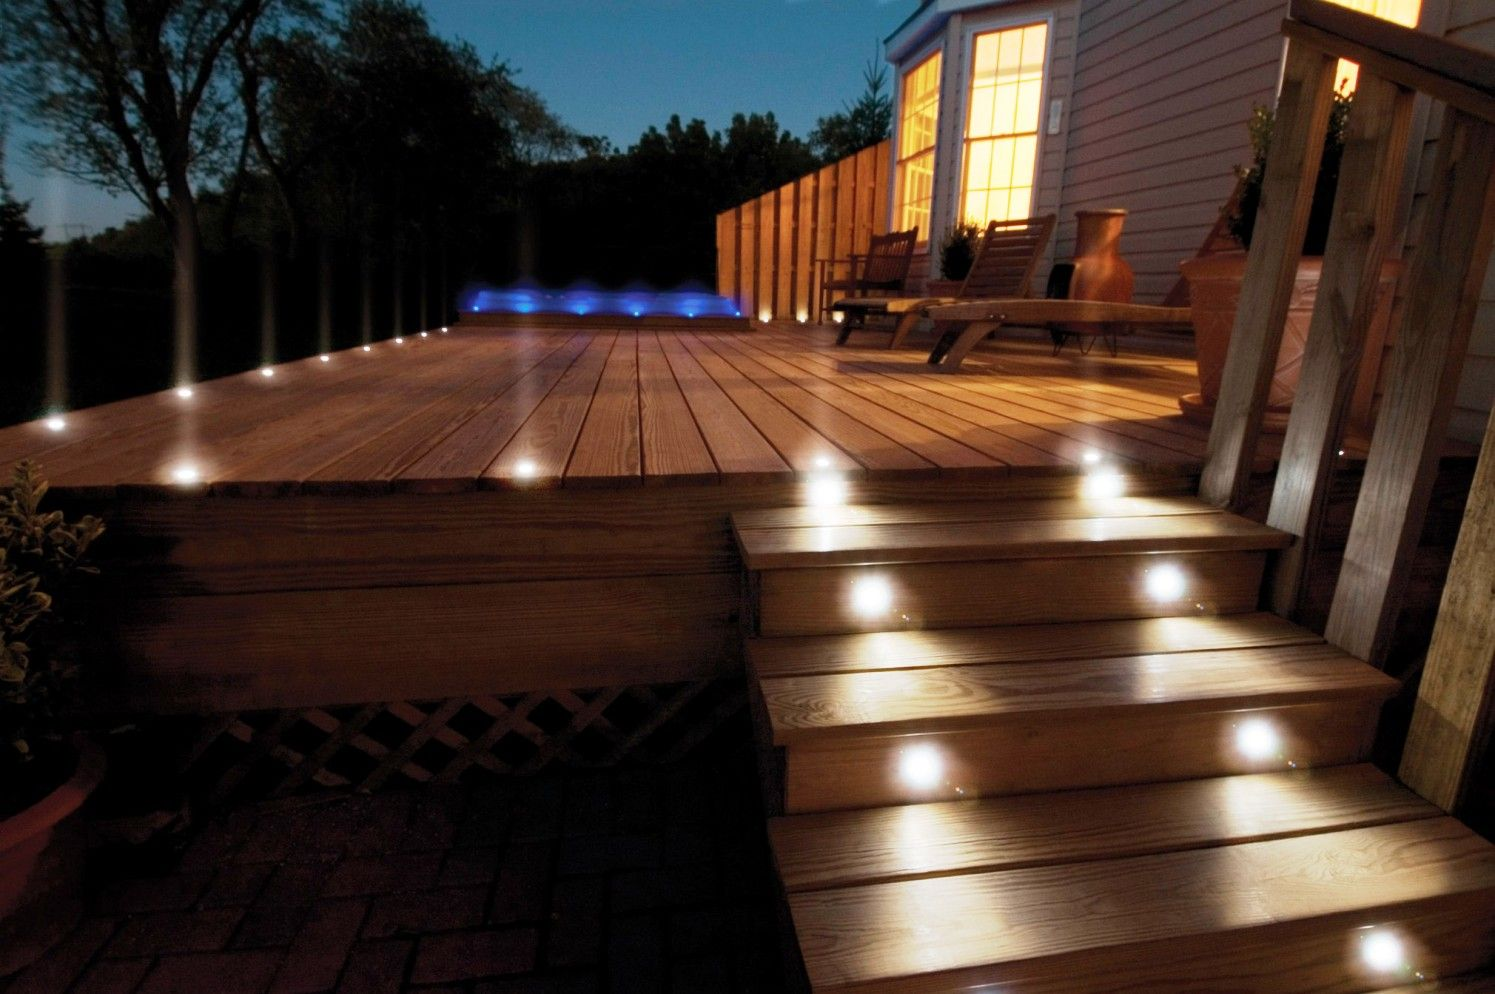 Leds 10 uses in architecture lights pinterest giardino